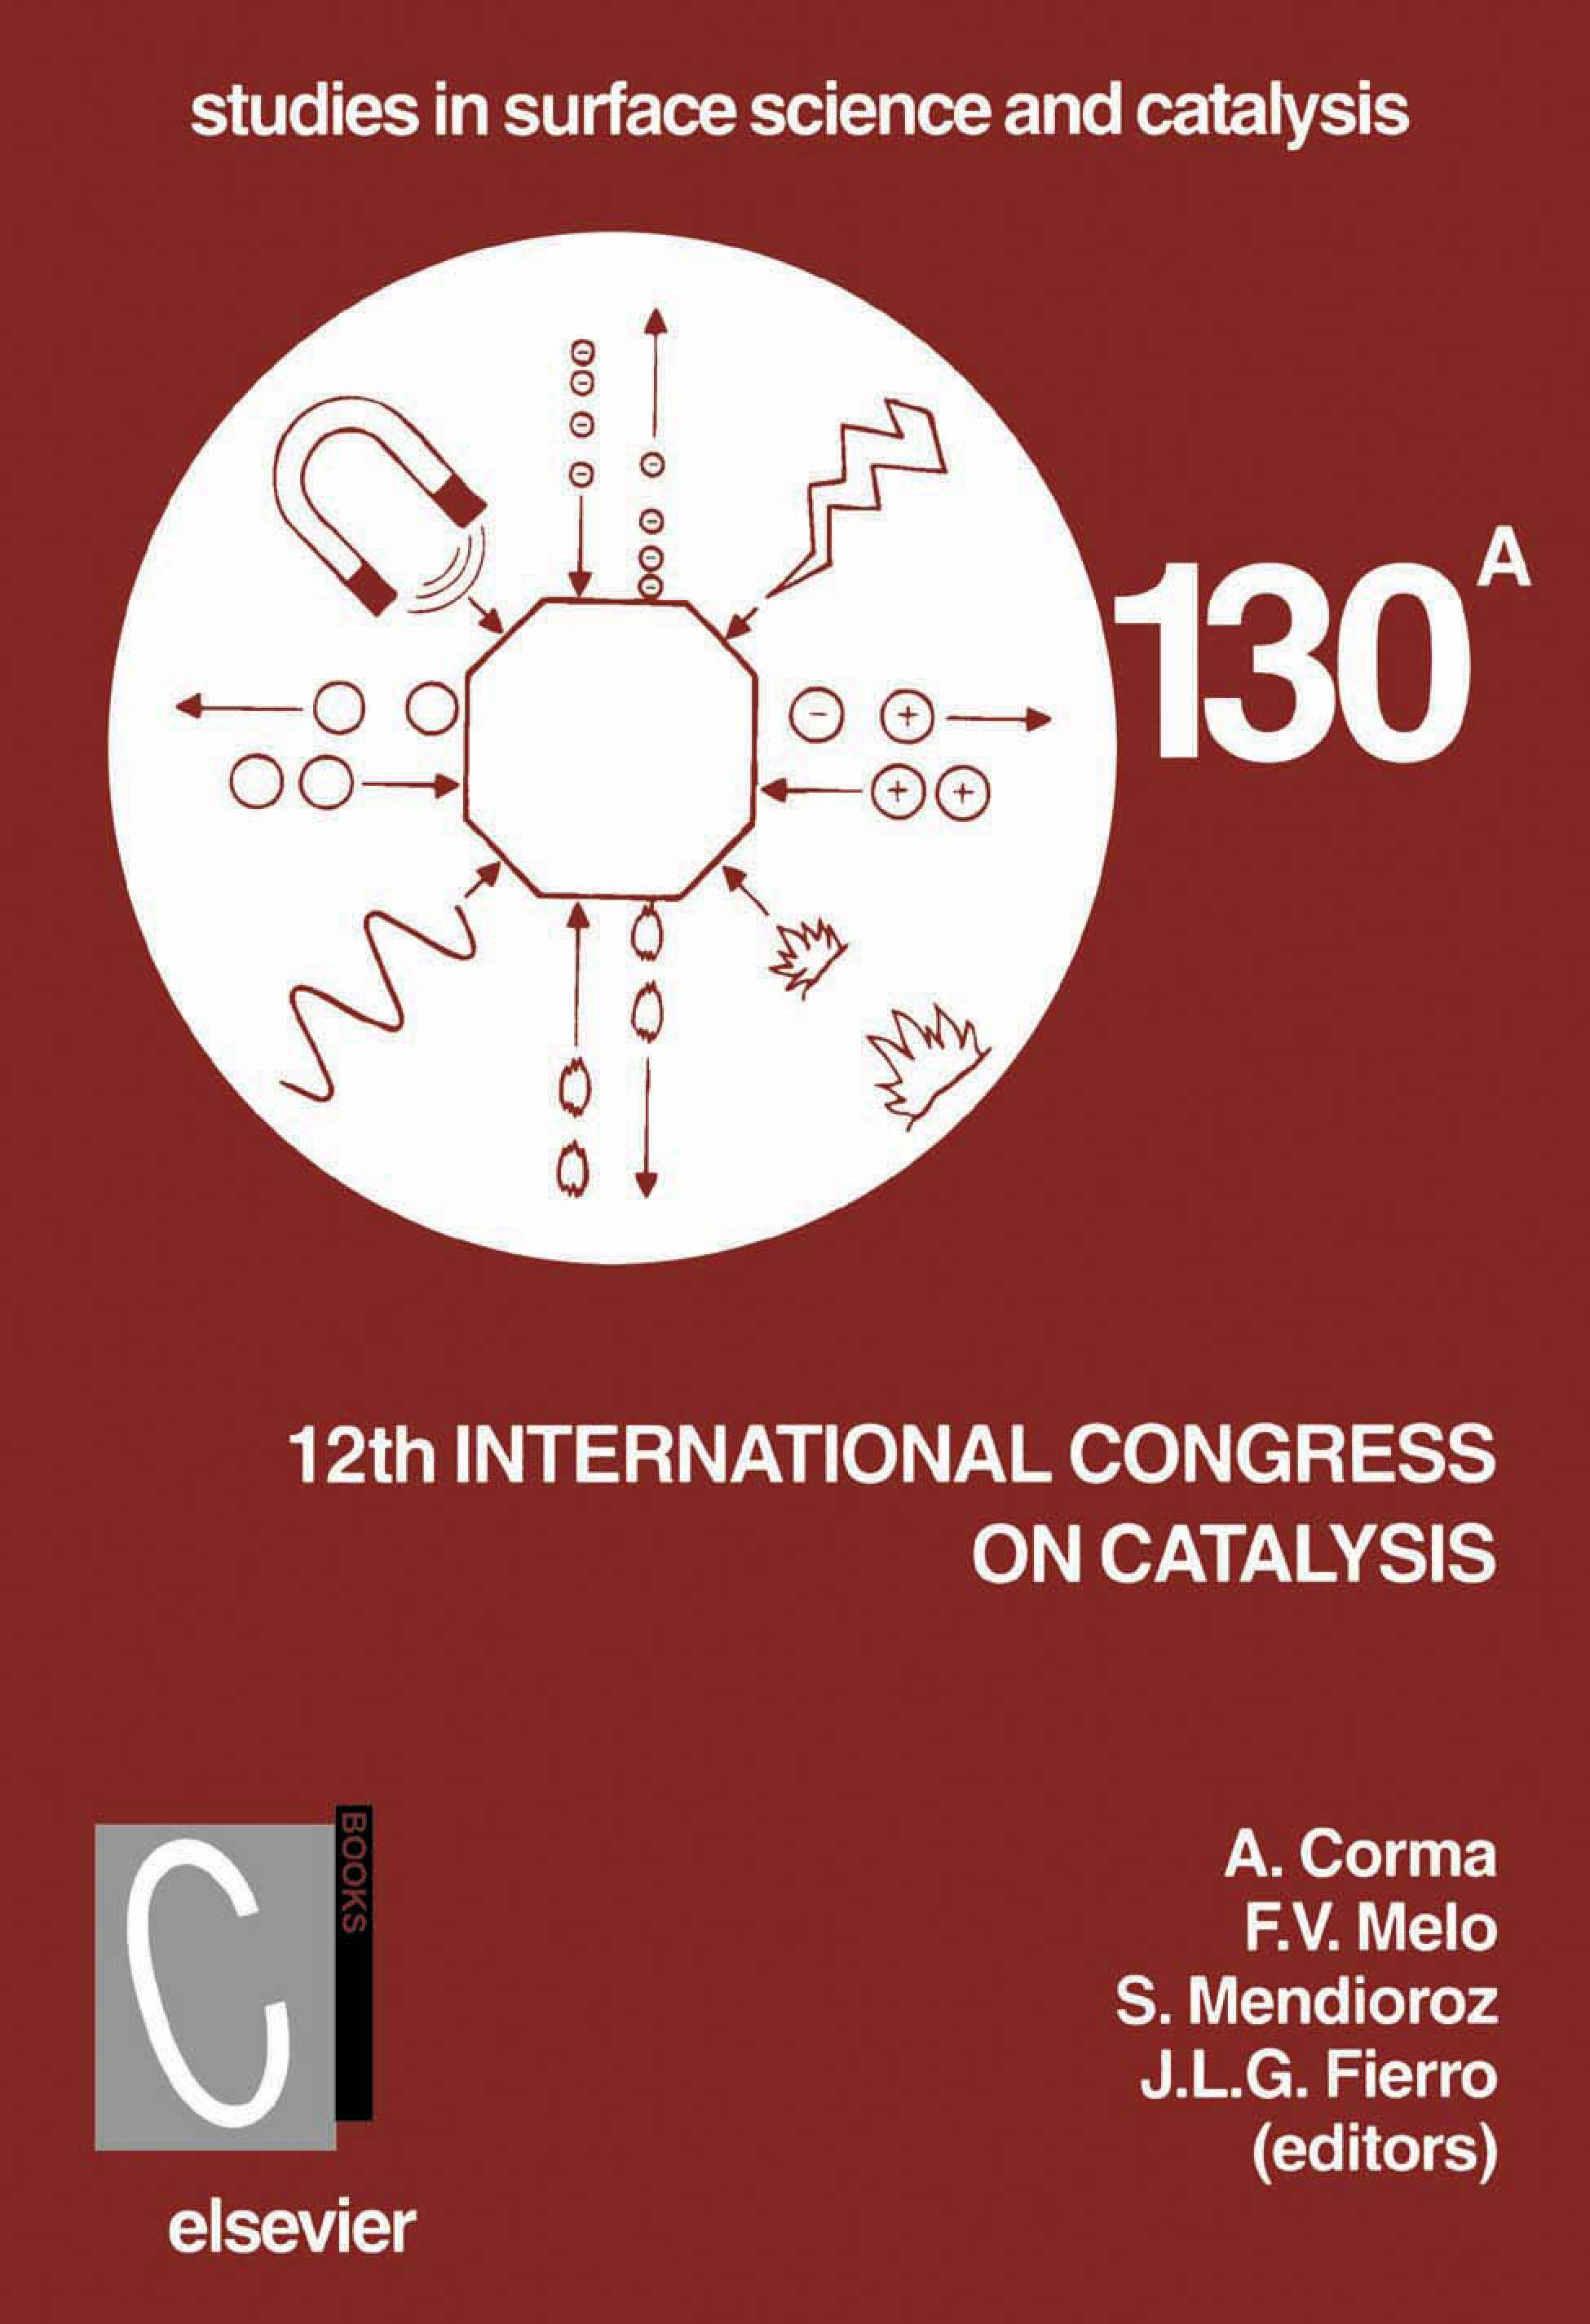 12th International Congress on Catalysis